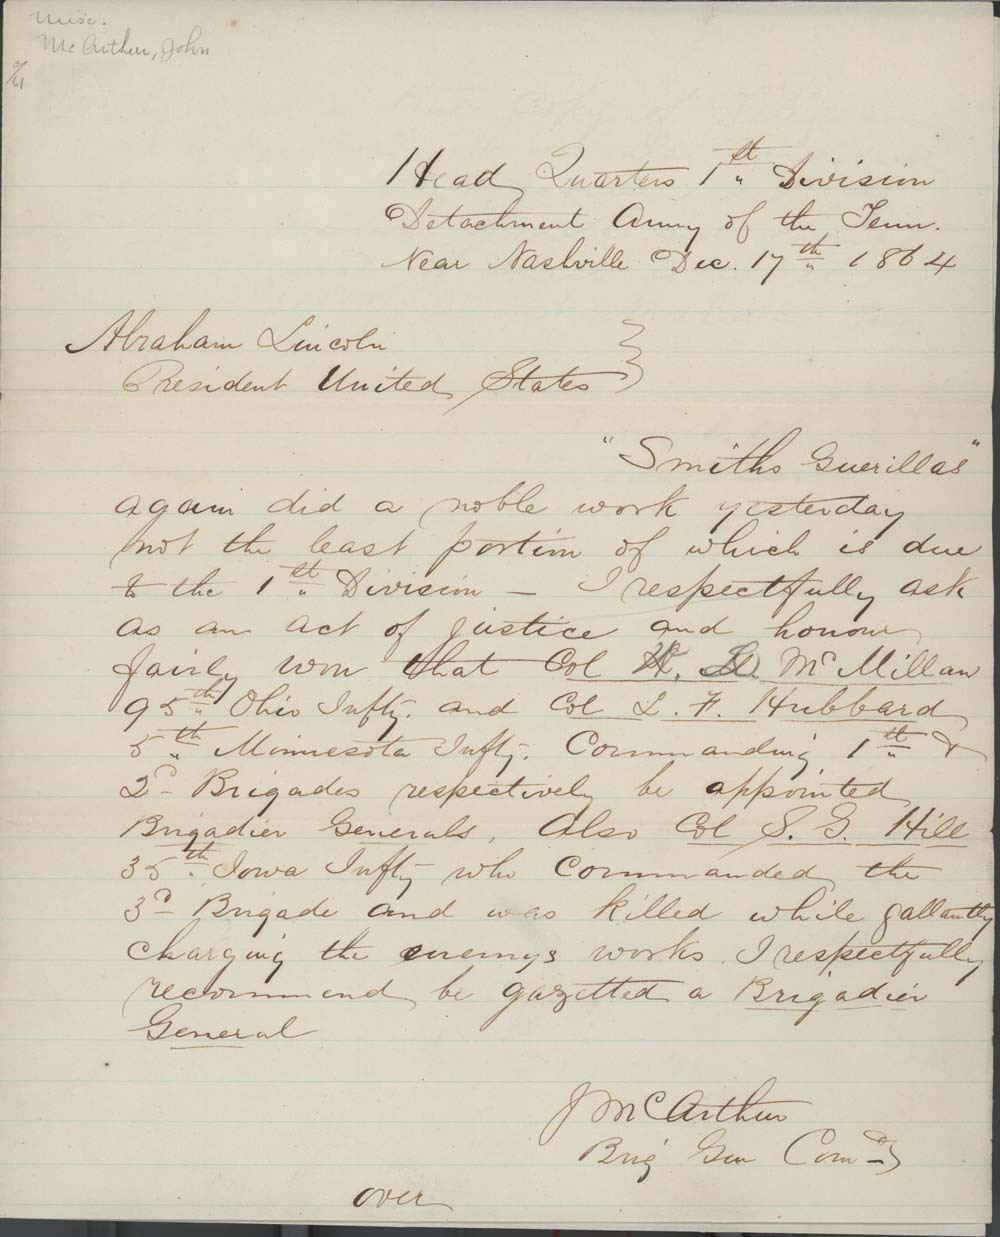 John McArthur to Abraham Lincoln, President of the United States - 1